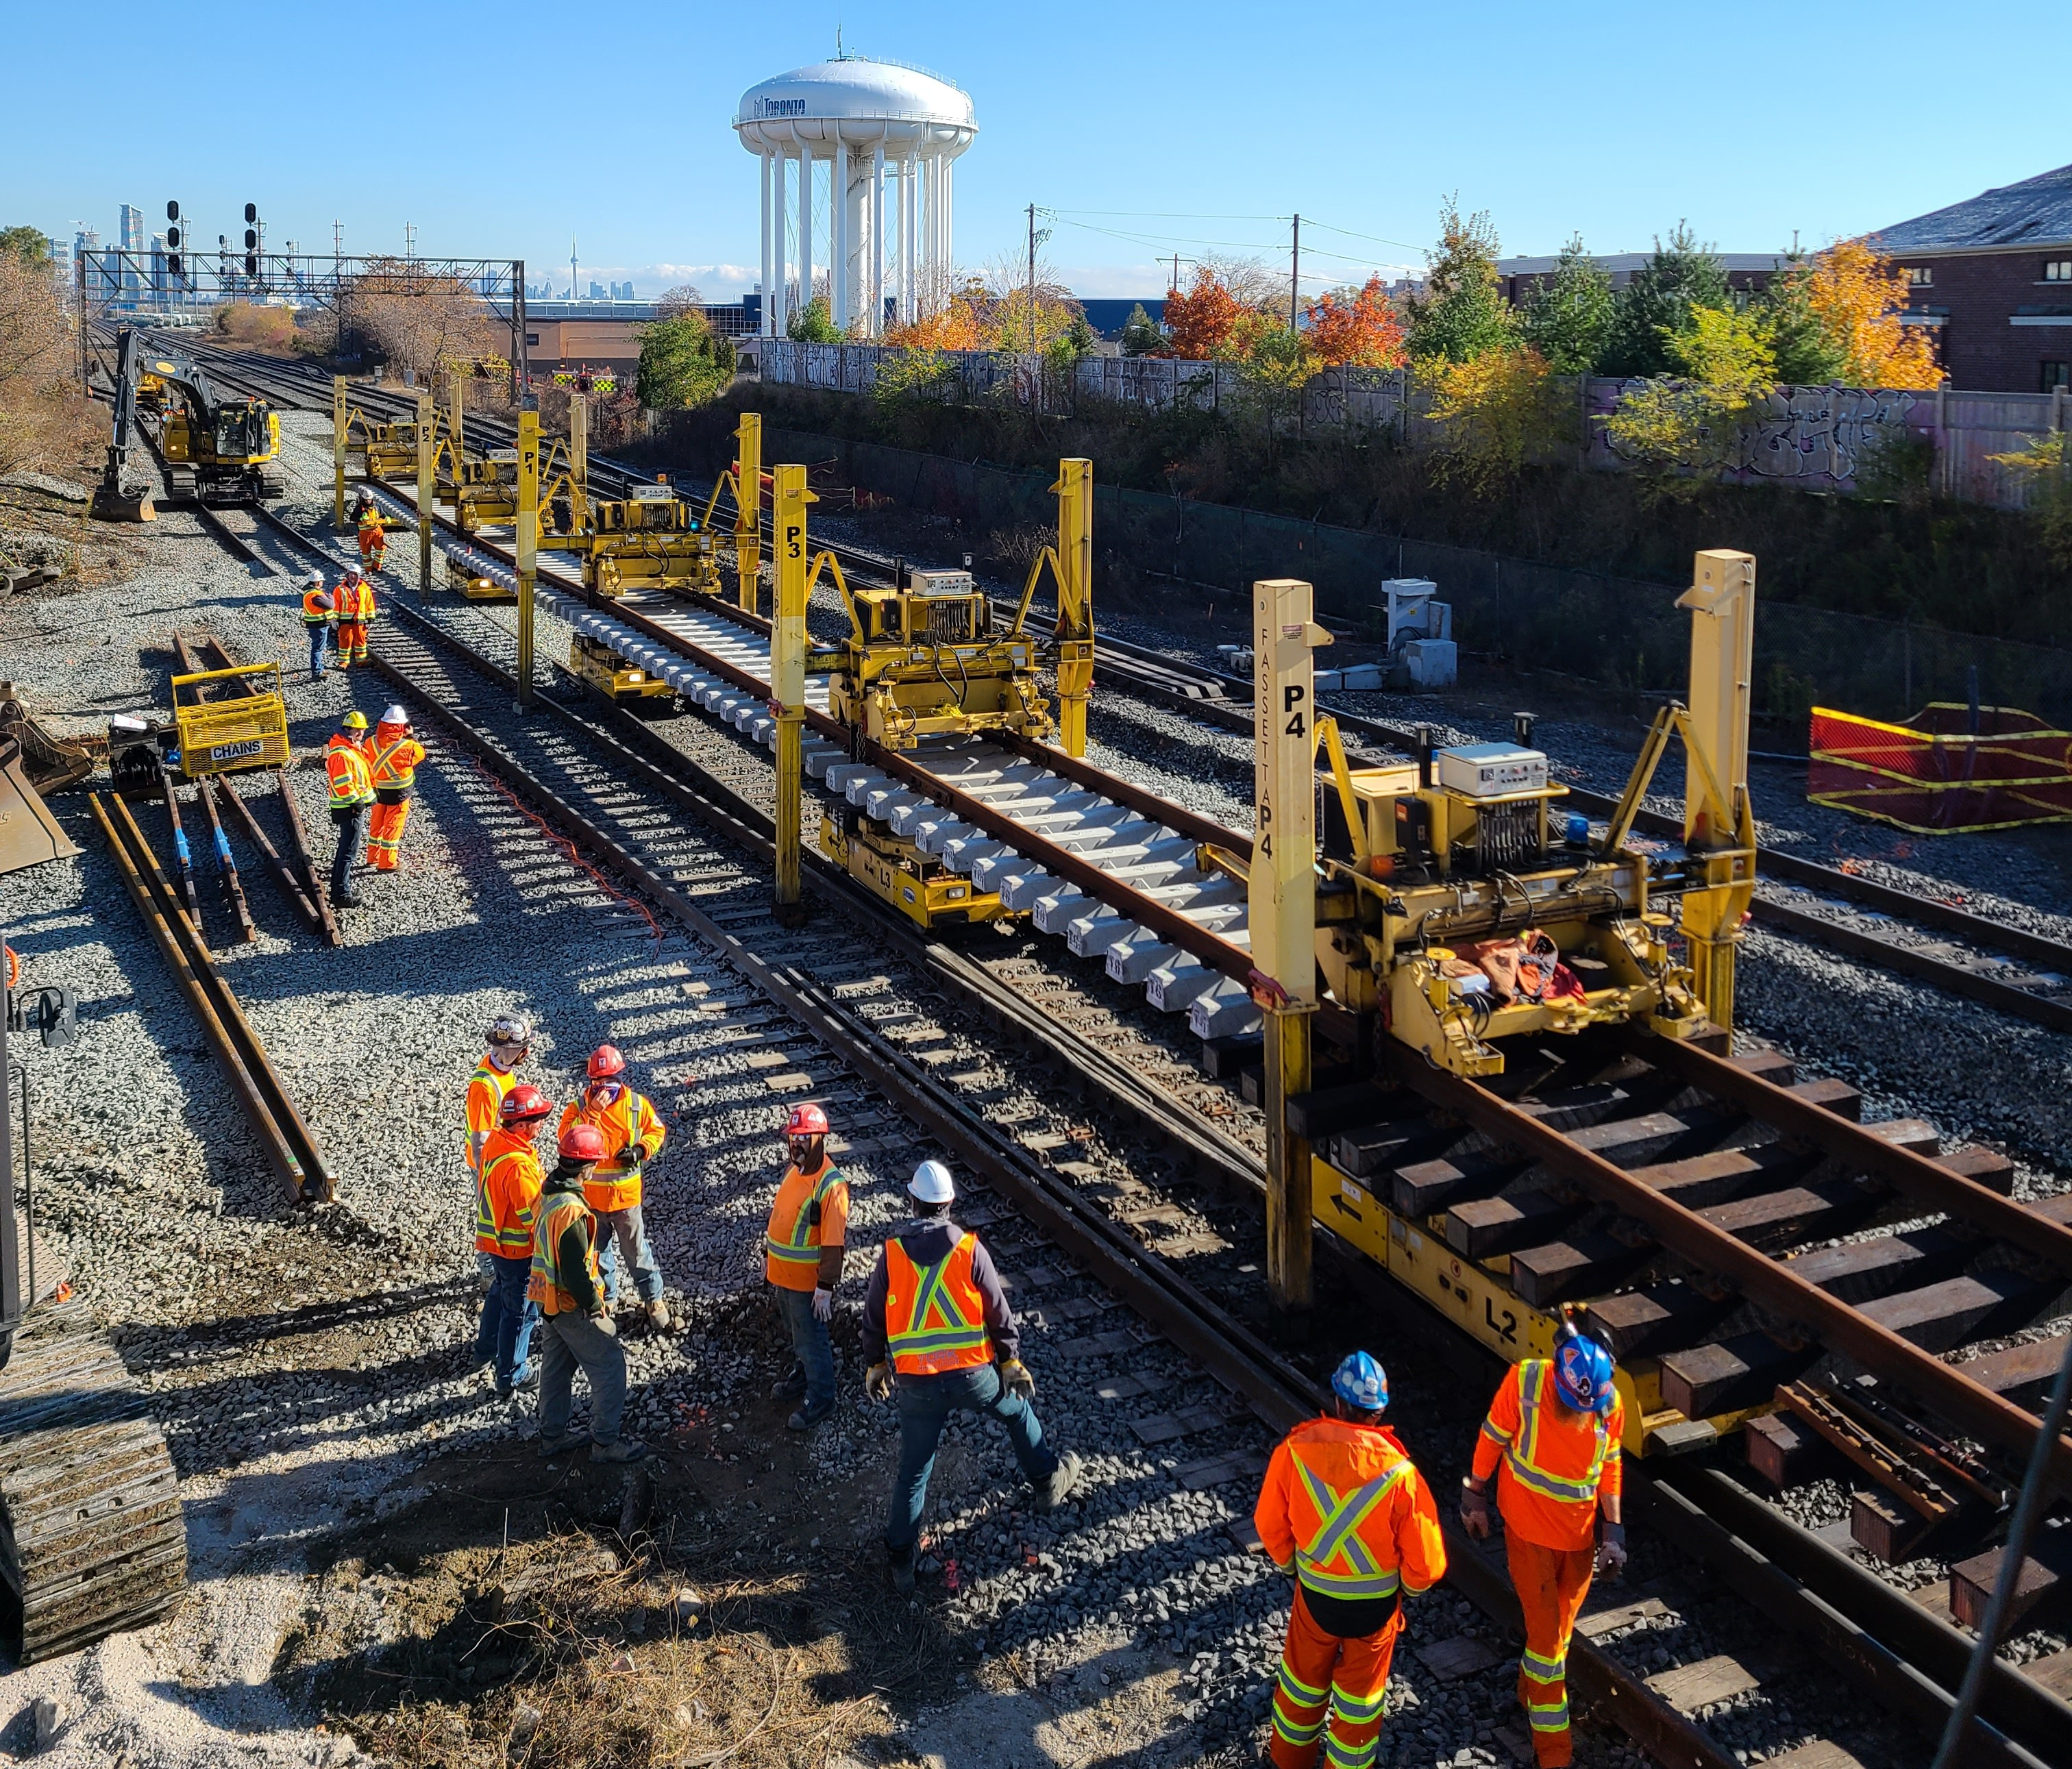 Work crews are replacing track and signal infrastructure on the Lakeshore West line over the next several months